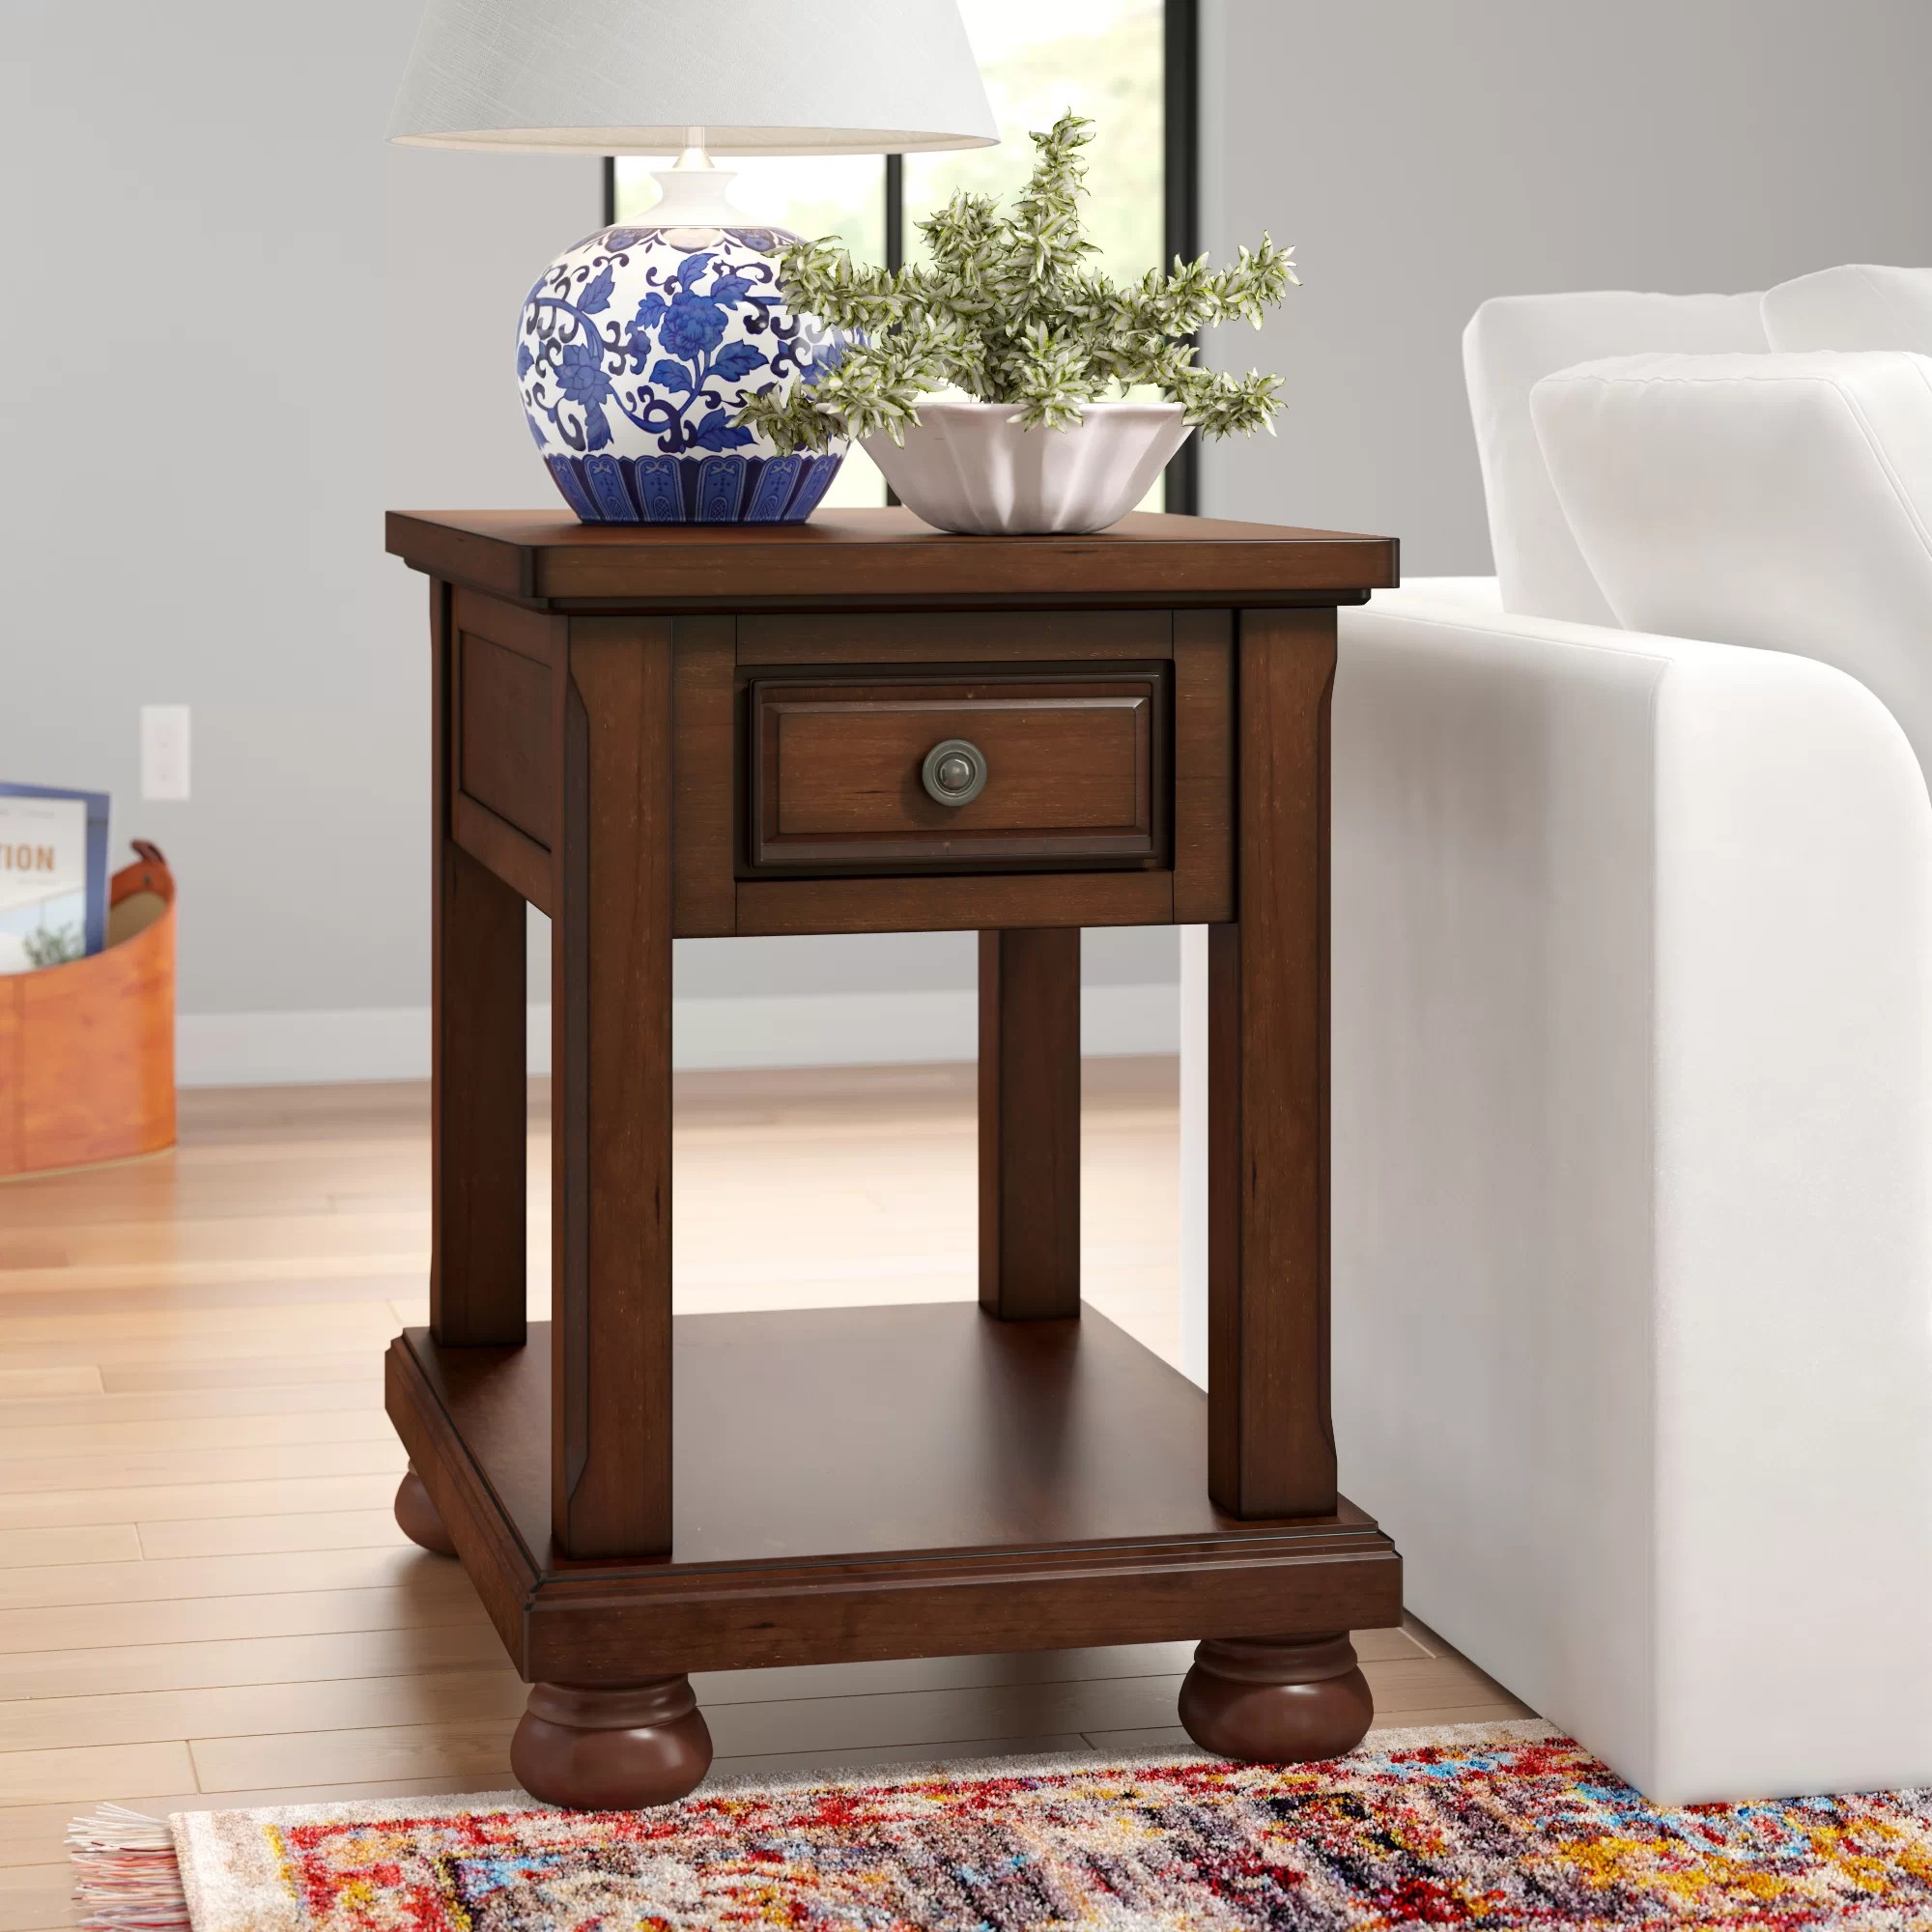 turkan c table end table